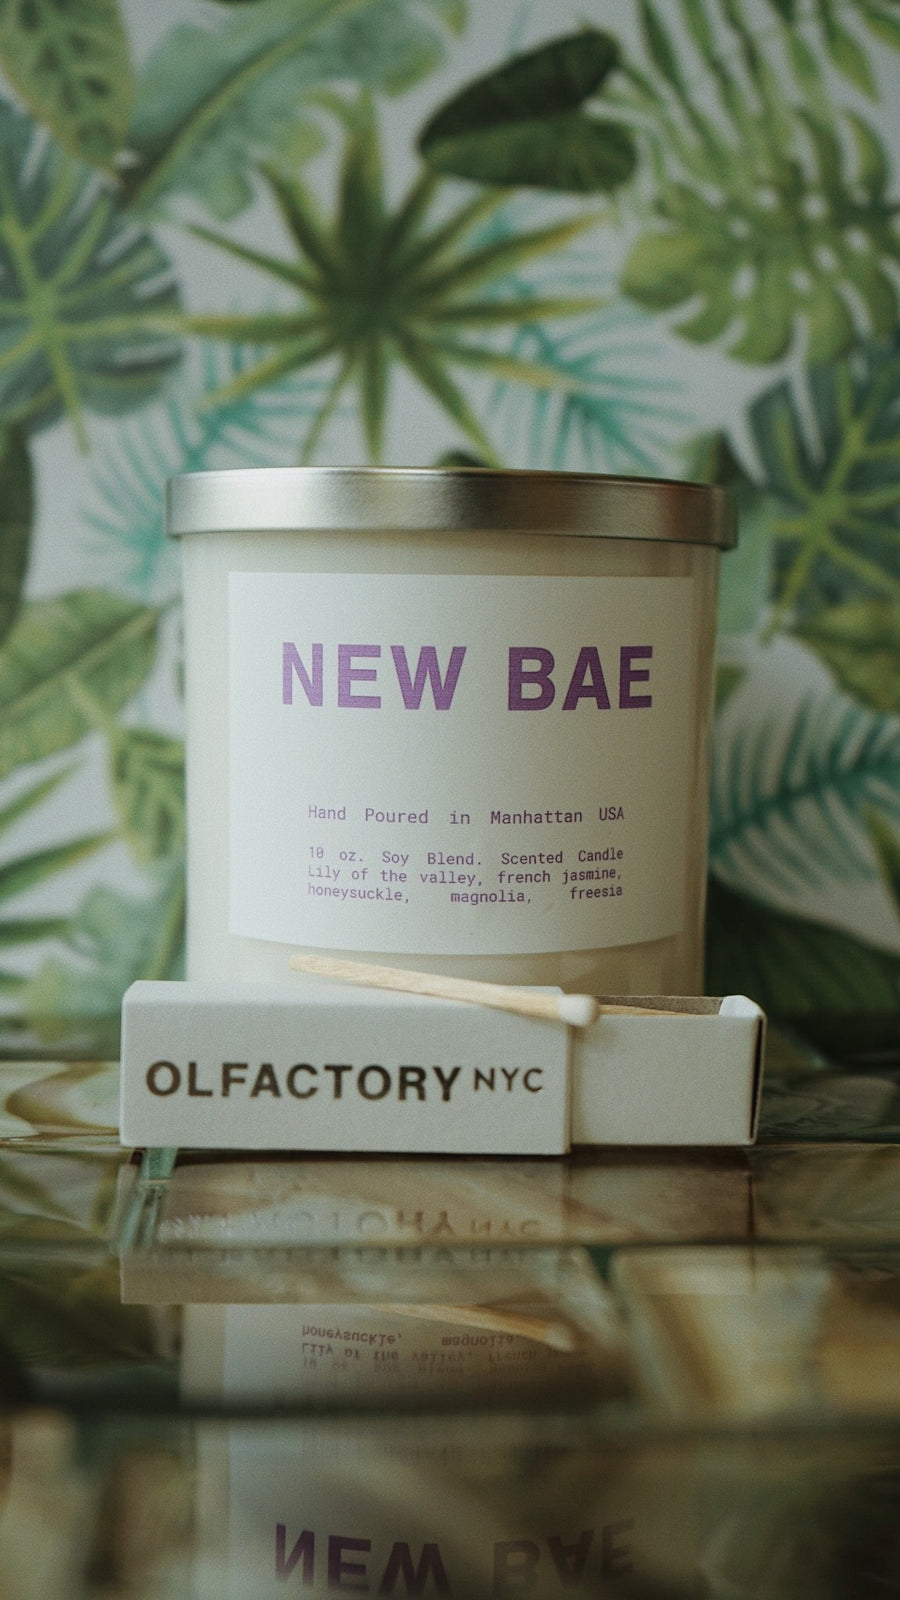 New Bae Candle by Olfactory NYC Hand Poured in Manhattan USA